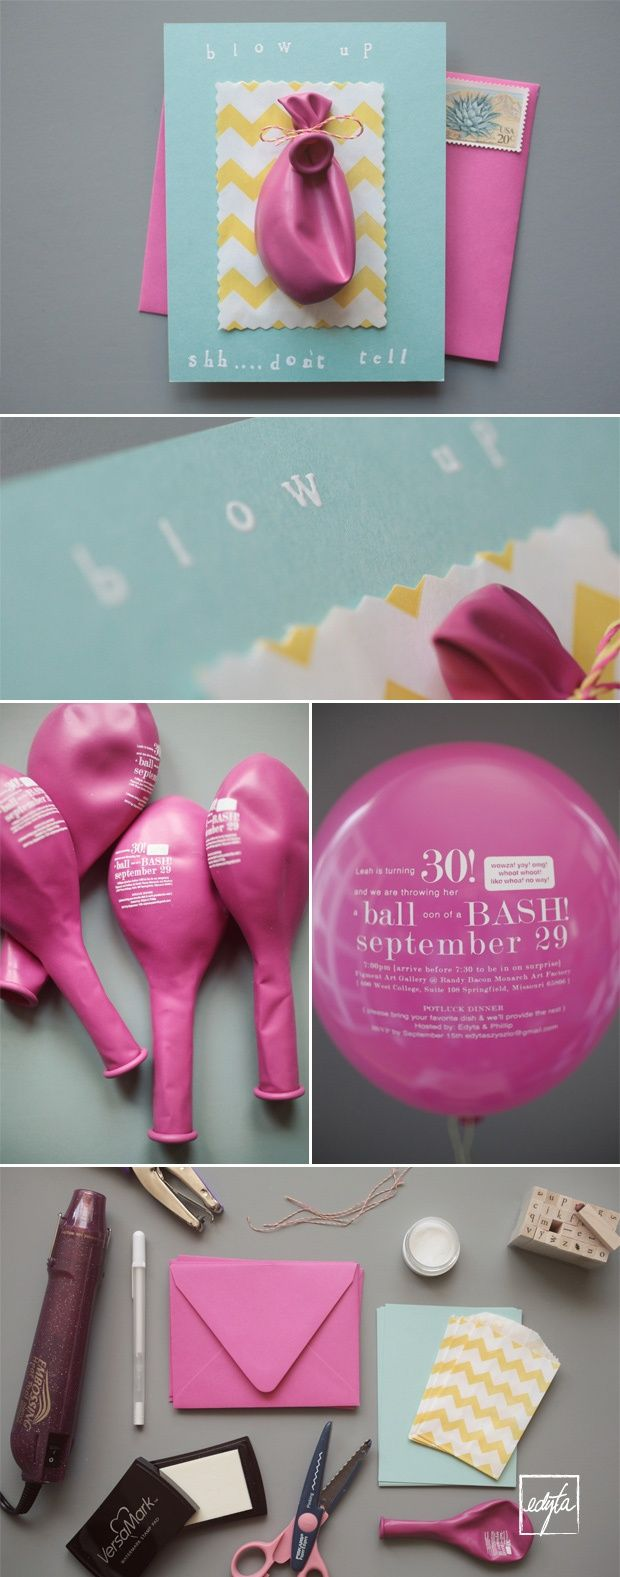 blow up balloon invite